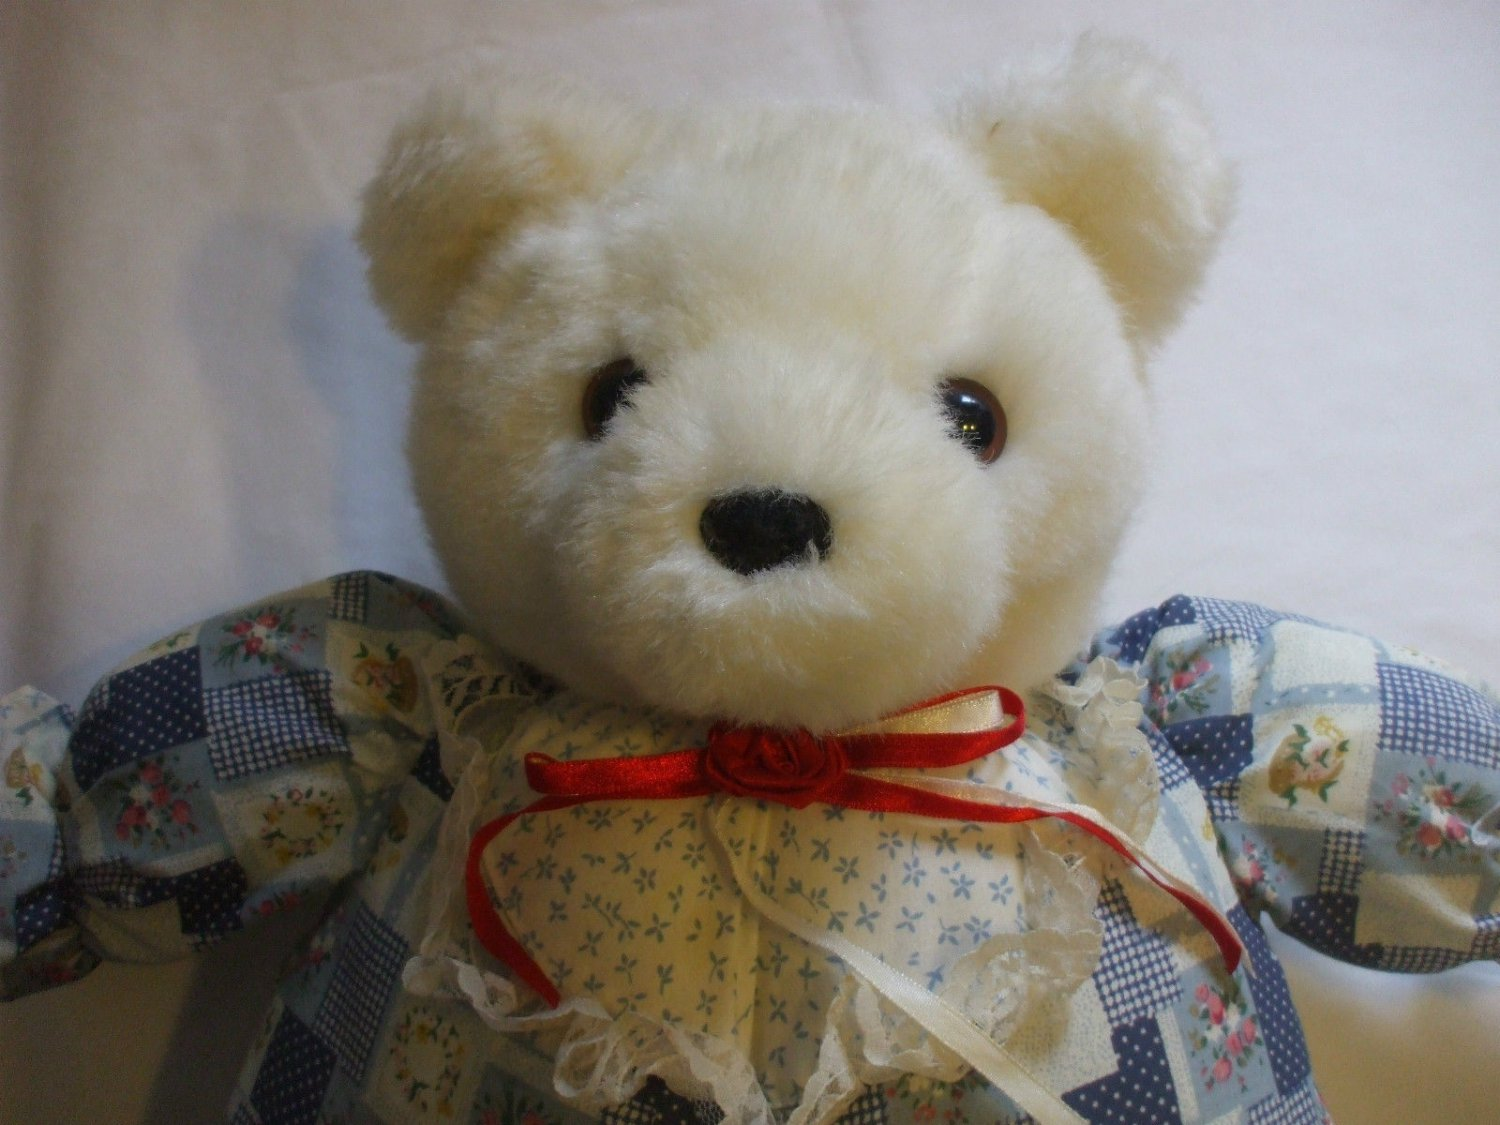 21 Inch Tall White Teddy Bear Country Outfit